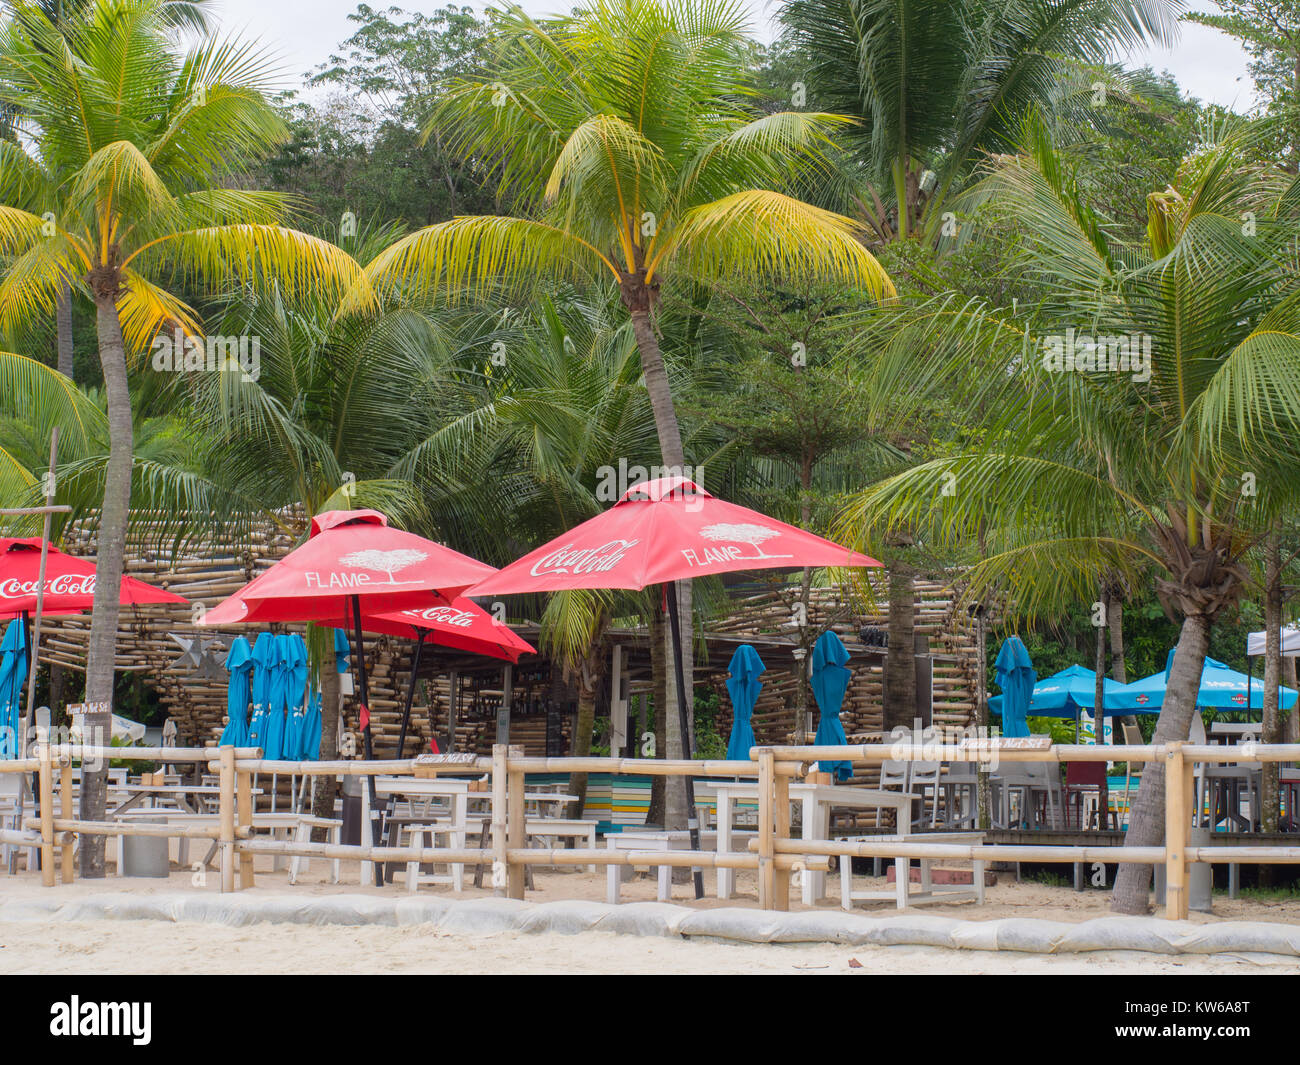 Beachside Tables And Umbrellas - Stock Image